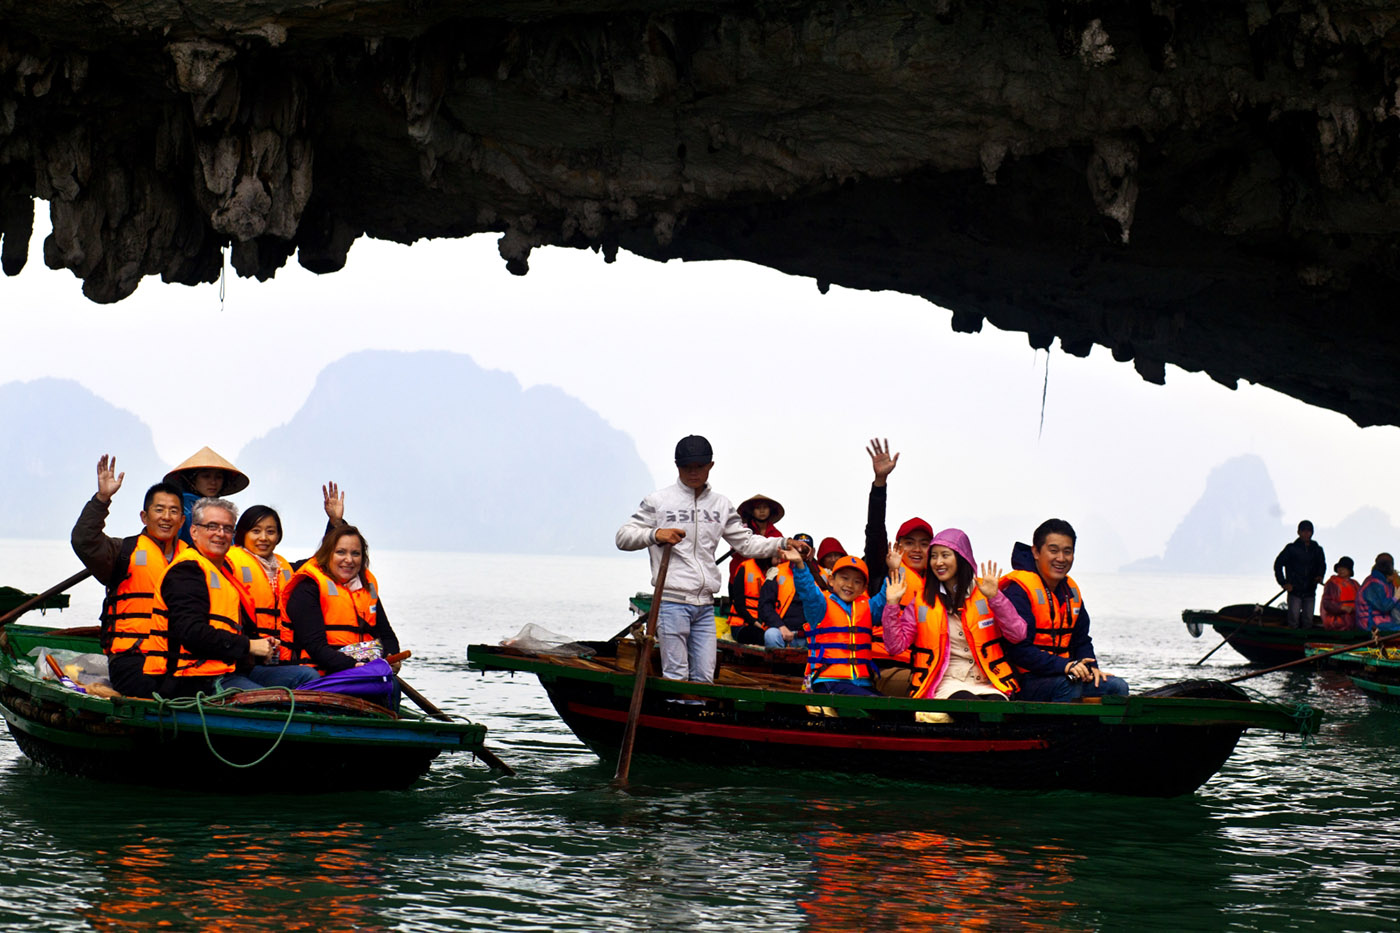 Kayaking in Halong Bay with Siganture HaLong Cruise